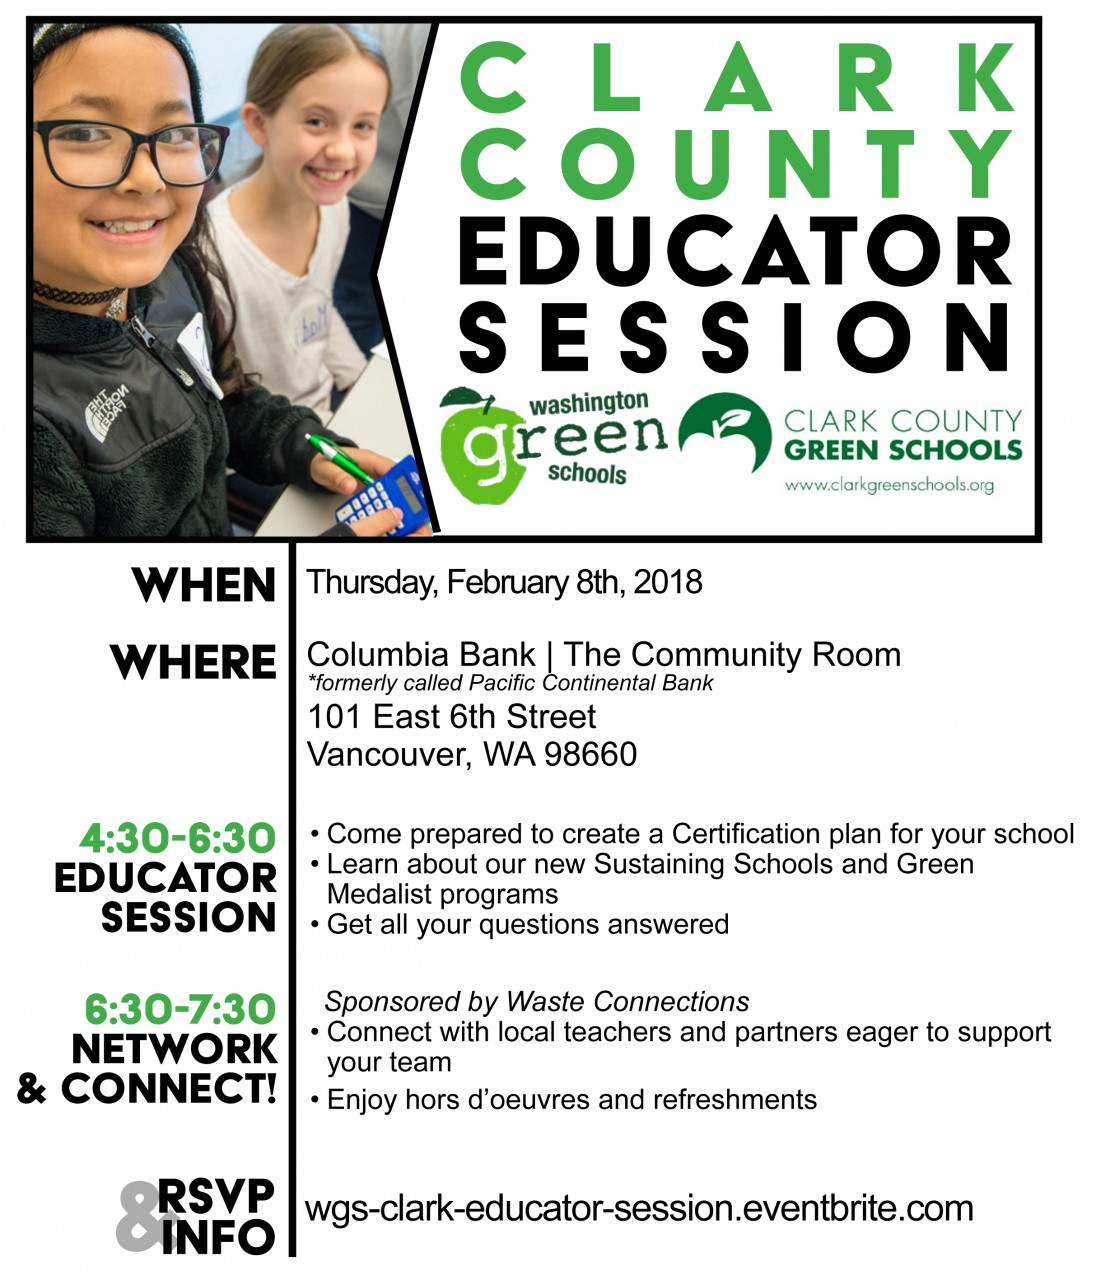 February 8th - Clark County Green Schools Winter Educator Session